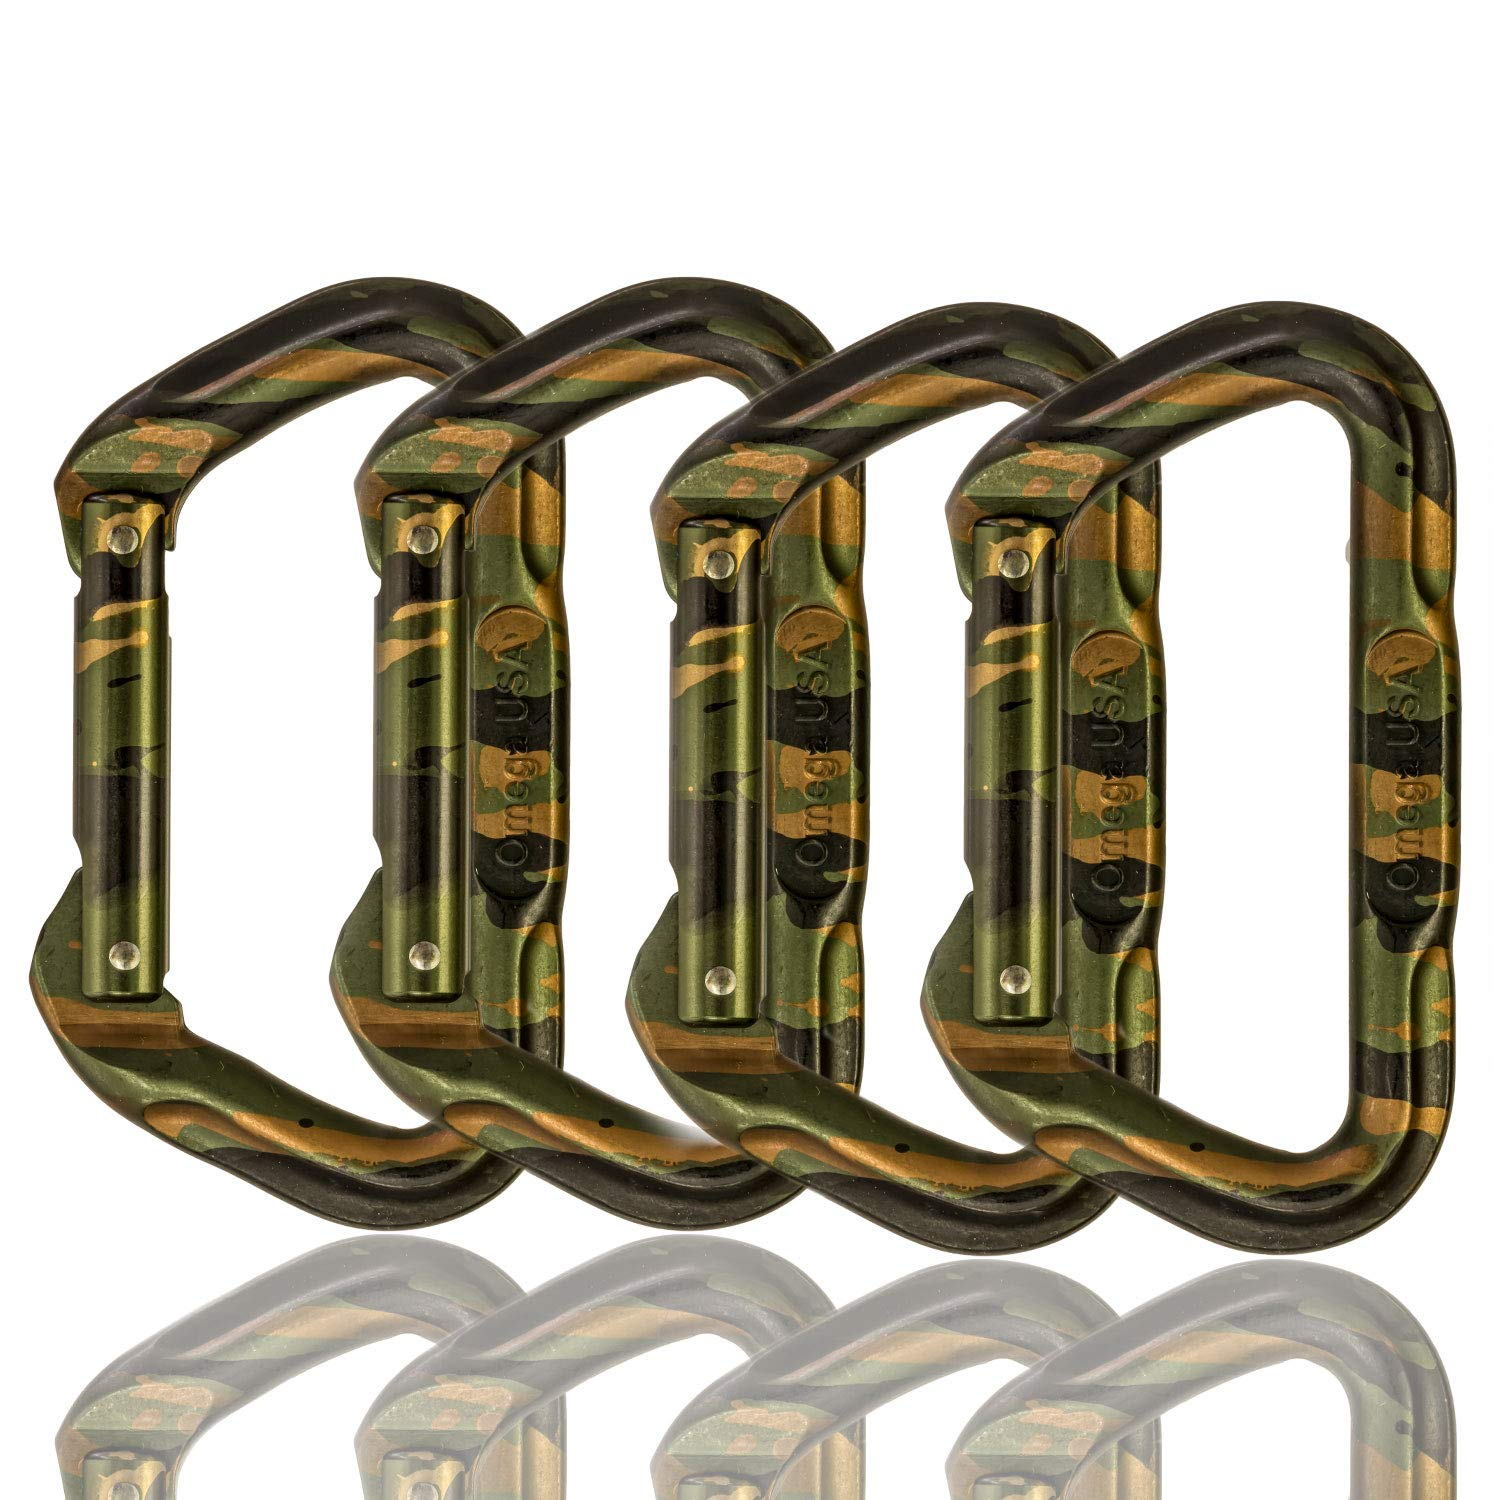 Omega Pacific Non Locking Climbing Carabiner, D, Straight Gate, Camouflage, 4 Pack, Rock Climbing Gear and Equipment, Safety, Rescue, Industrial, and Arborist Uses by Omega Pacific